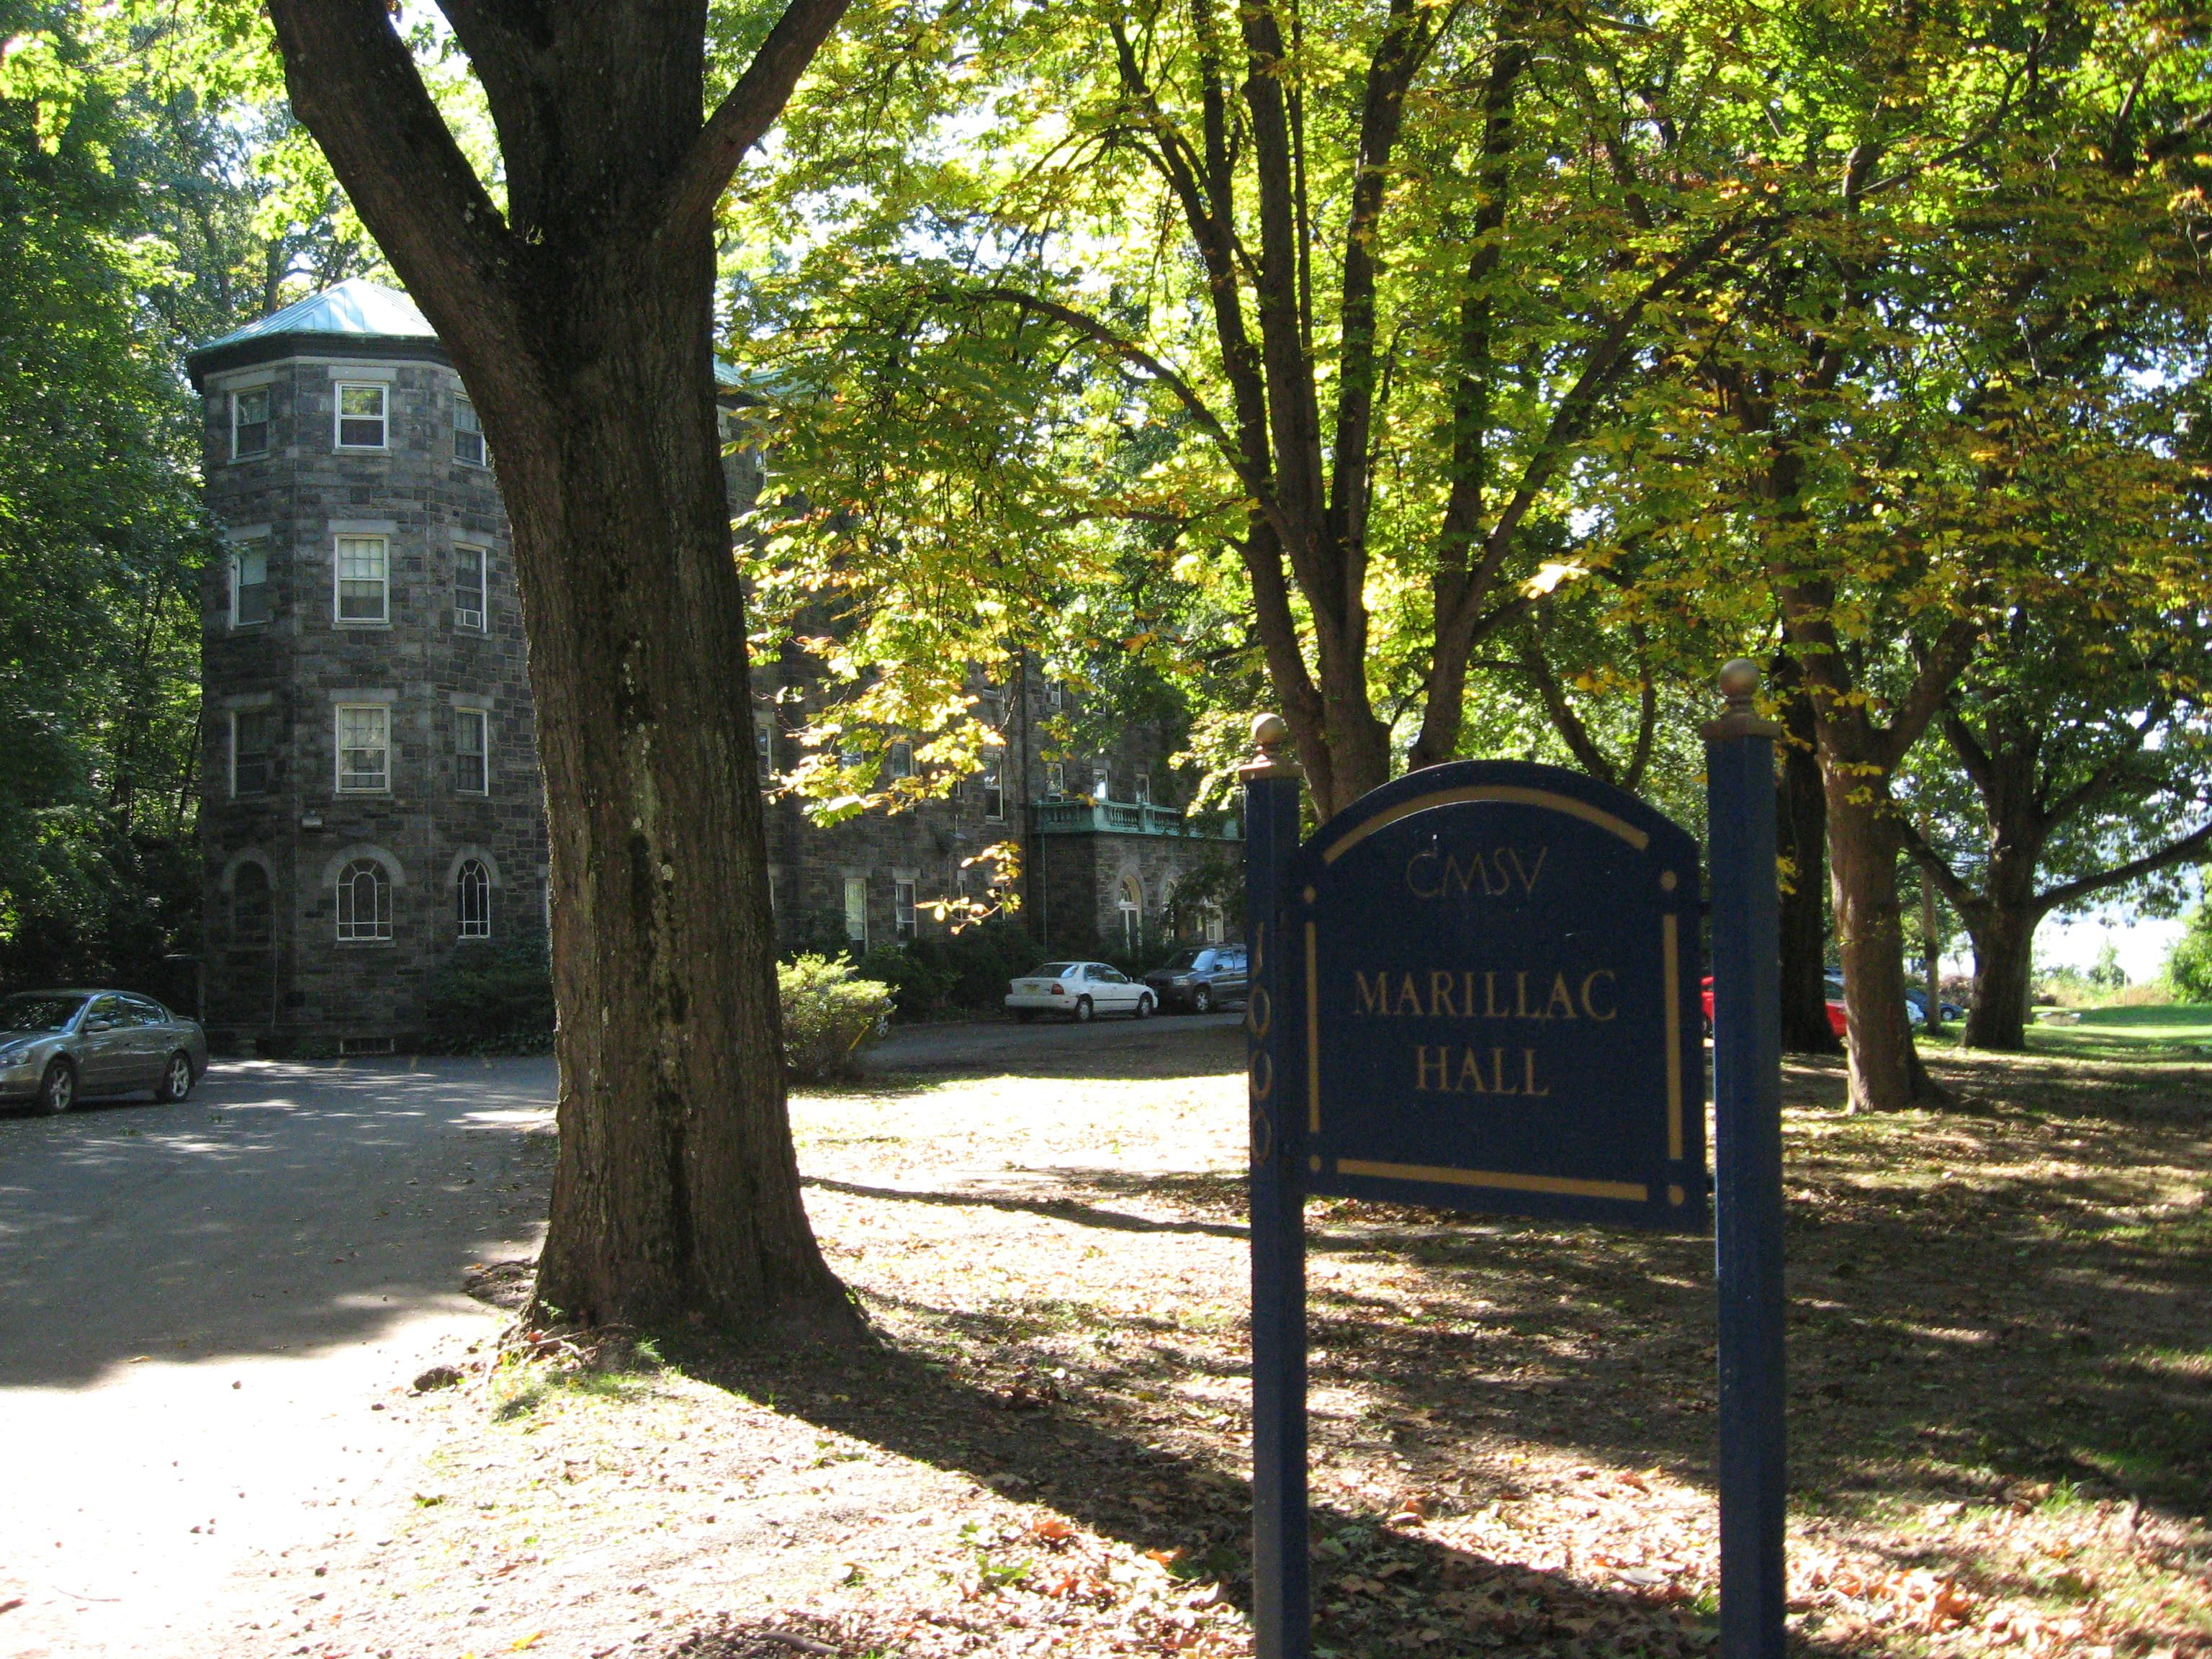 I Thought I was Alone: Marillac Hall, Part 2